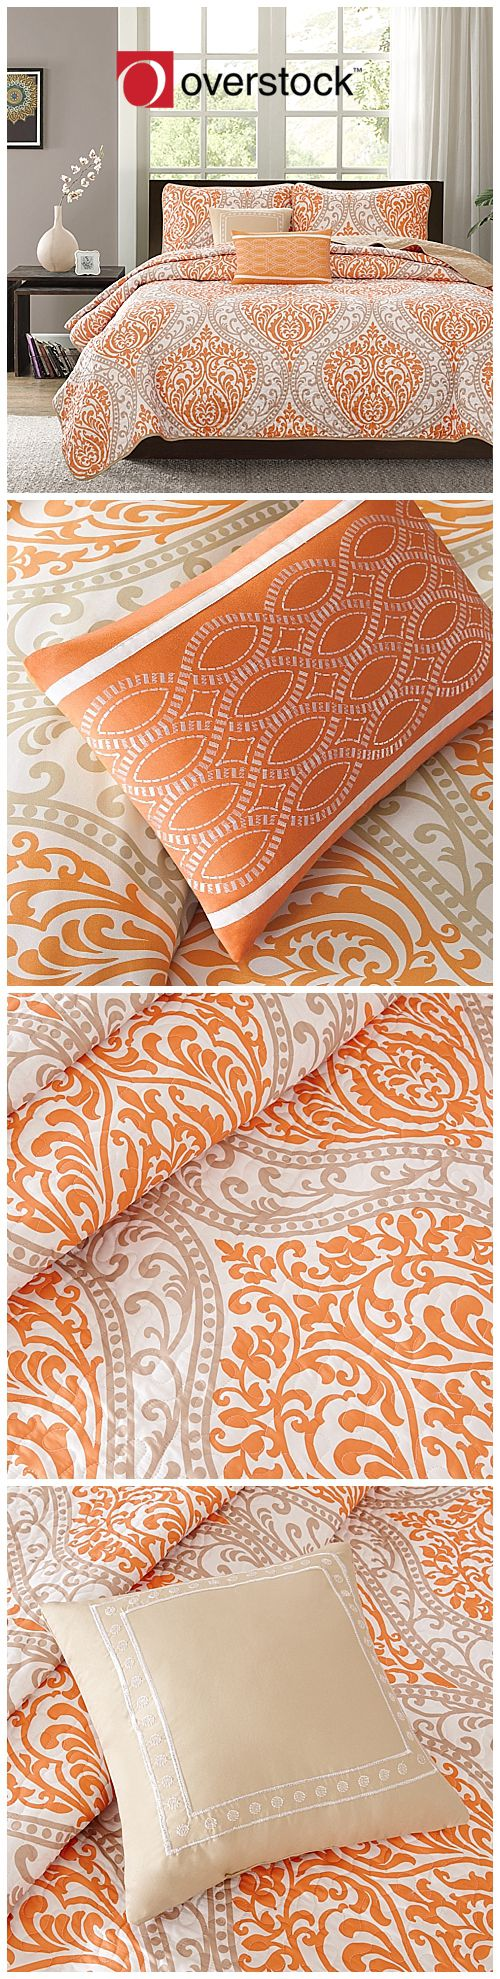 bring the beauty of fall into your bedroom with this gorgeous burnt orange five piece comforter